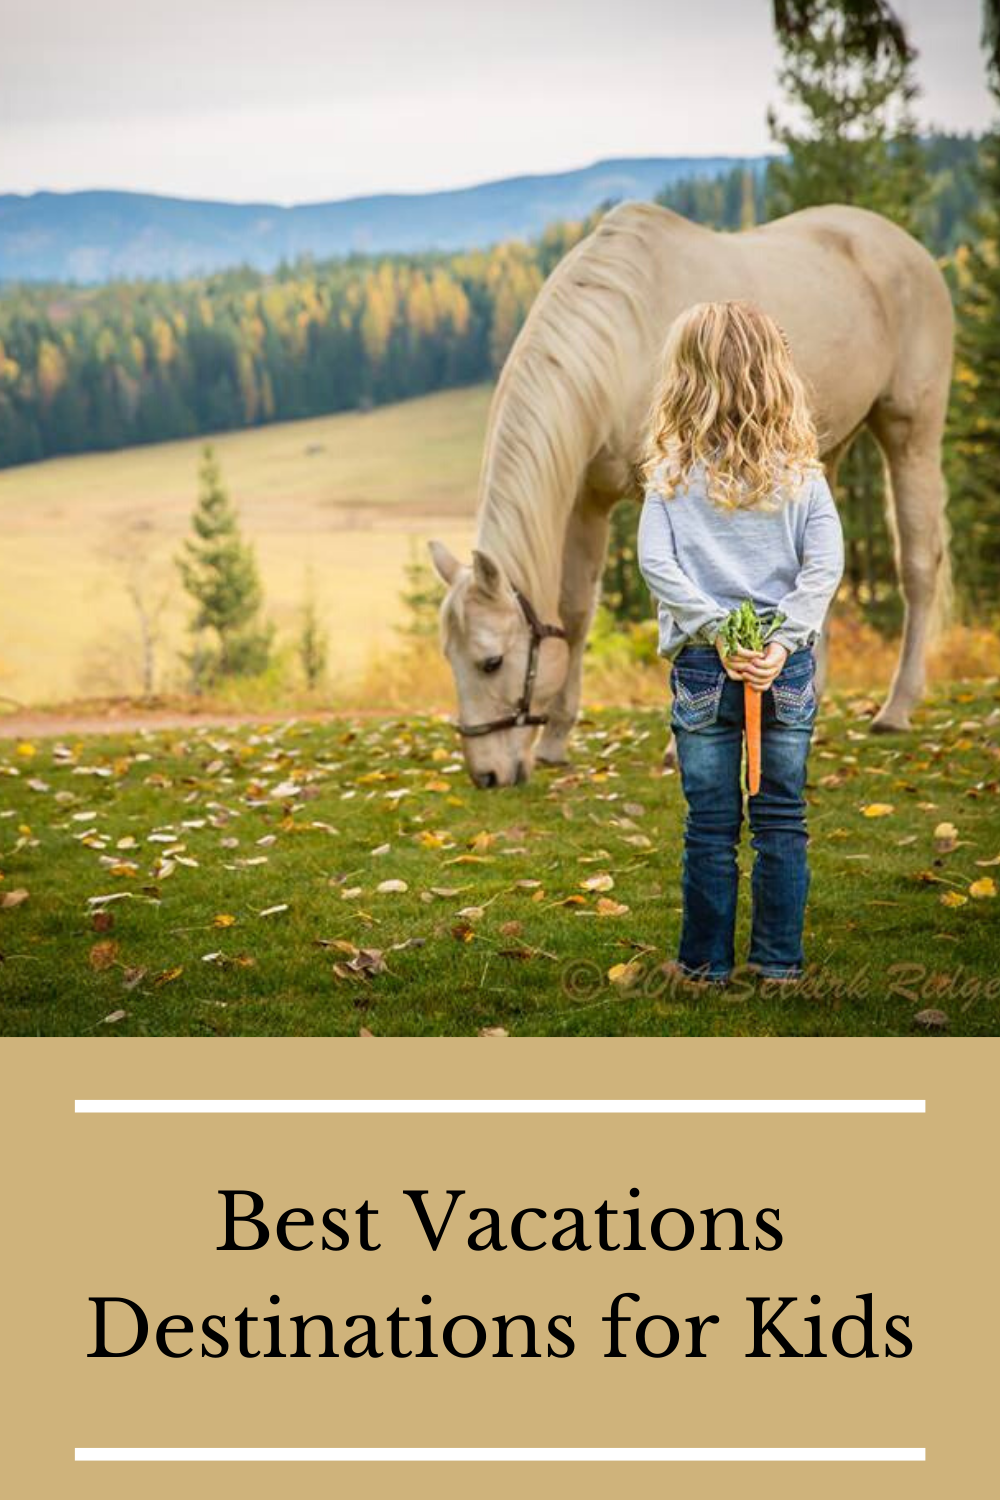 Best Vacations Destinations for Kids